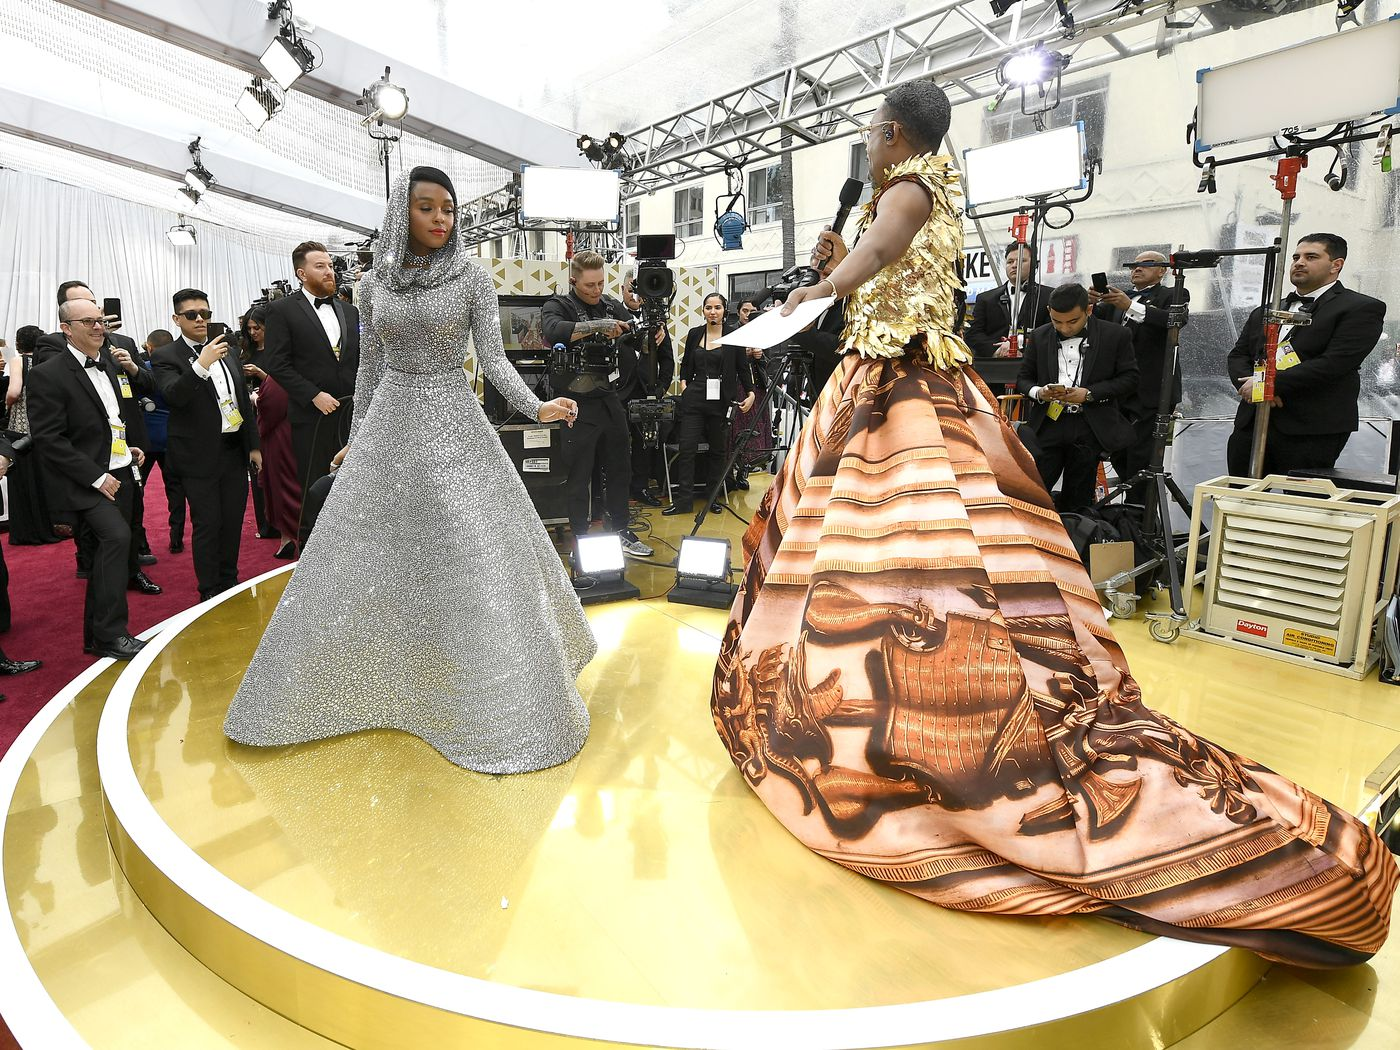 Oscars 2020 The Red Carpet From Billy Porter To Laura Dern Vox